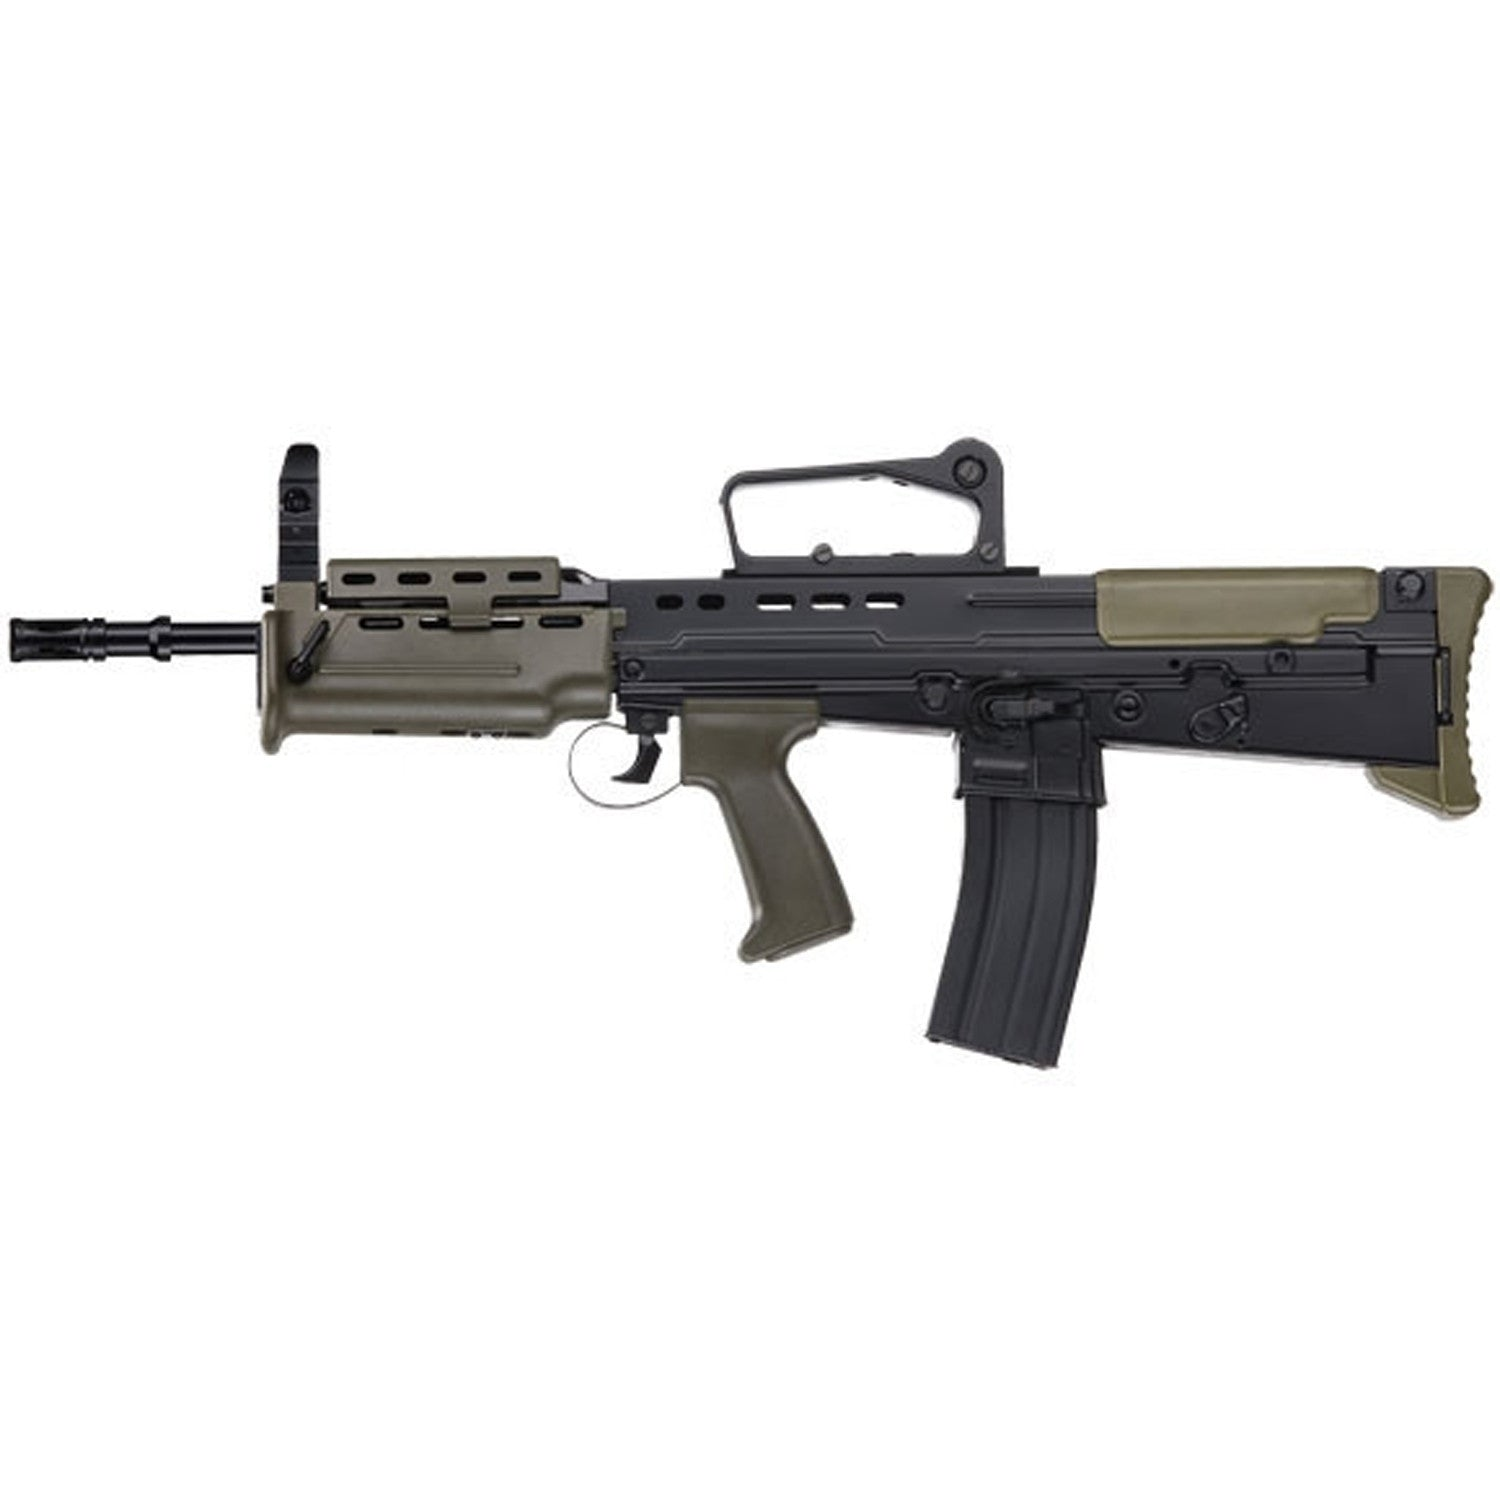 ICS L85 A2 CARBINE - 400 fps (0.2 g BB) / Range 180-220 feet, - Brand New Gearbox Set with Adjustable Spring Strength - Full Metal Body and Gearbox